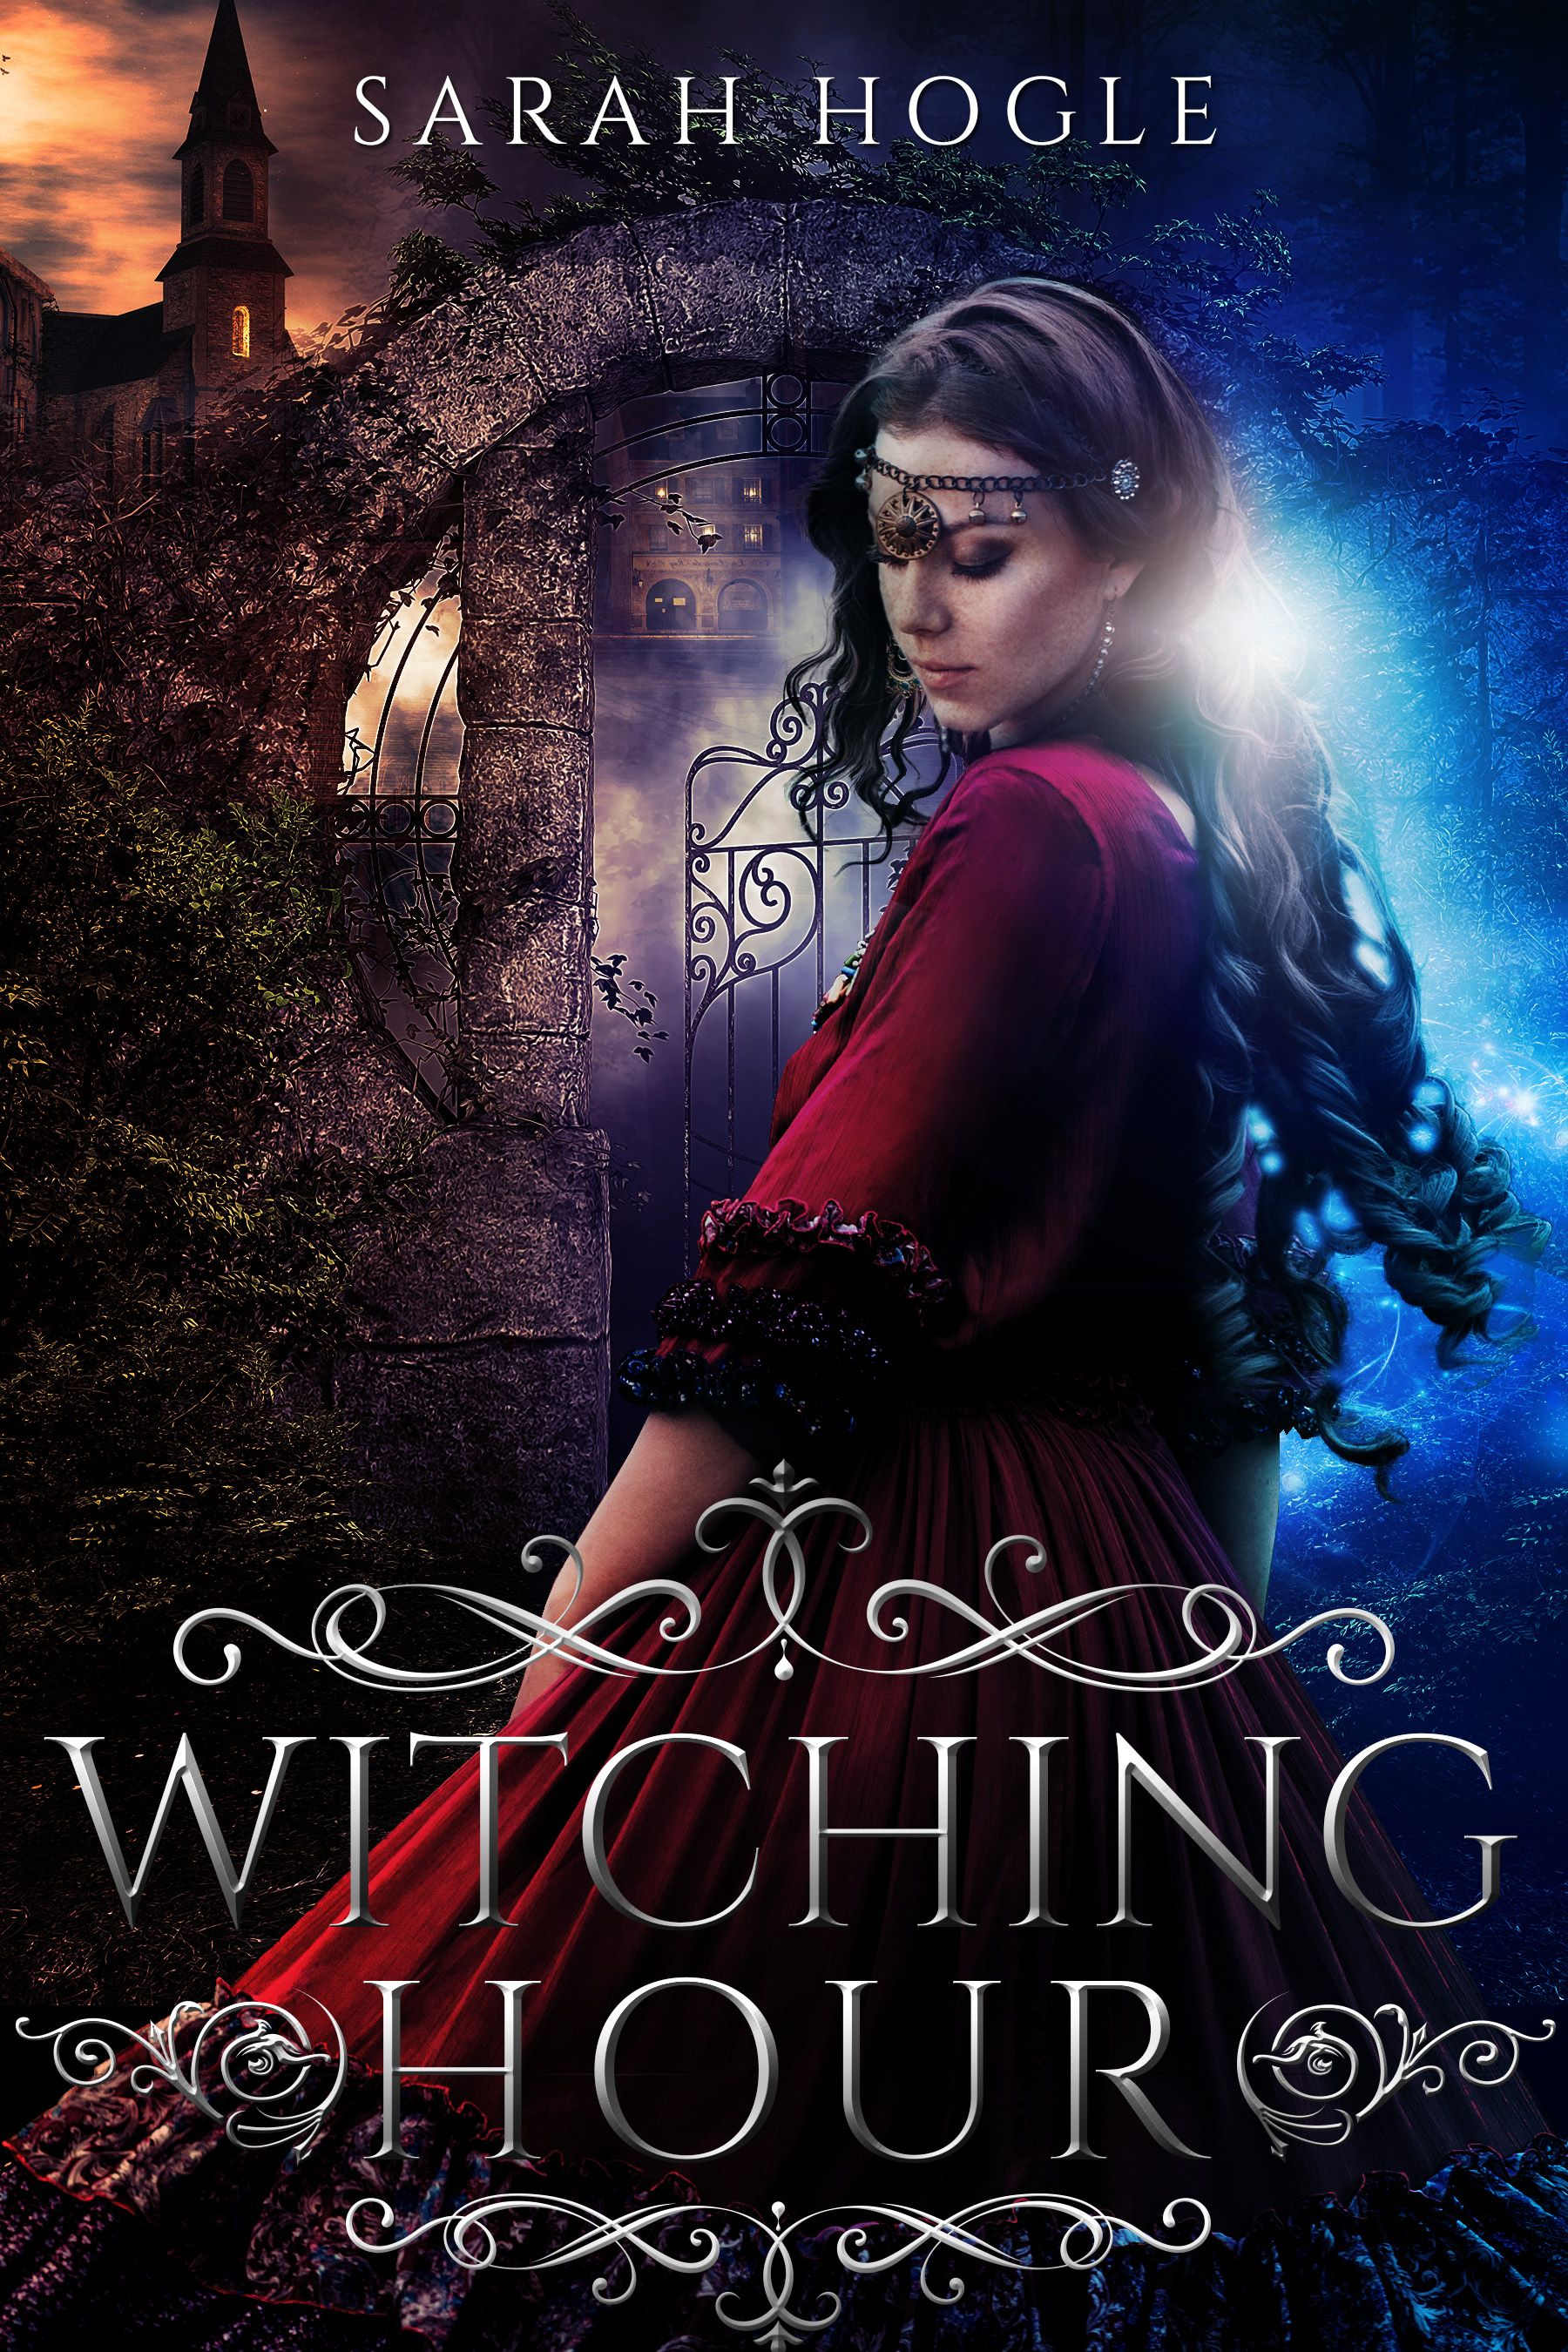 Urban Fantasy Book Cover : Paranormal urban fantasy book cover design deranged